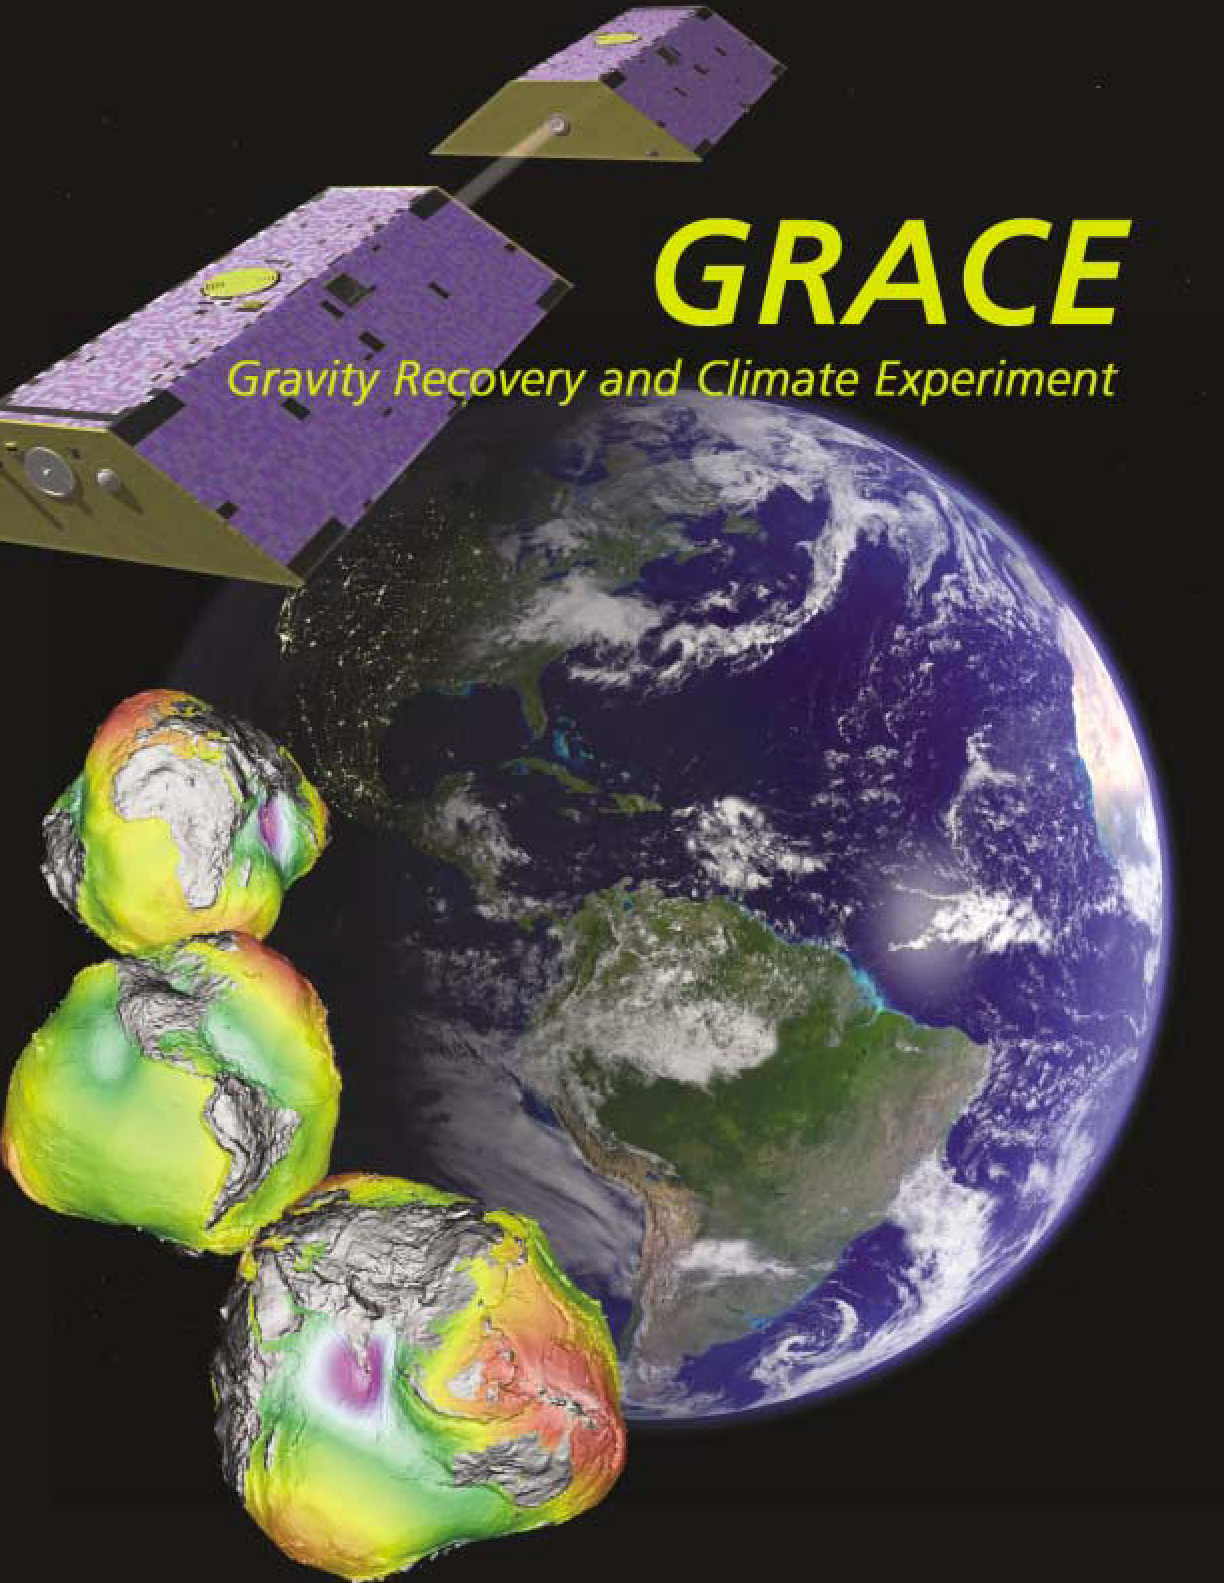 catastrophic grace in the mission The grace-fo mission, a partnership between nasa and the german research centre for geosciences (gfz), will measure small variations in earth's mass to track how and where water is moving across the planet.